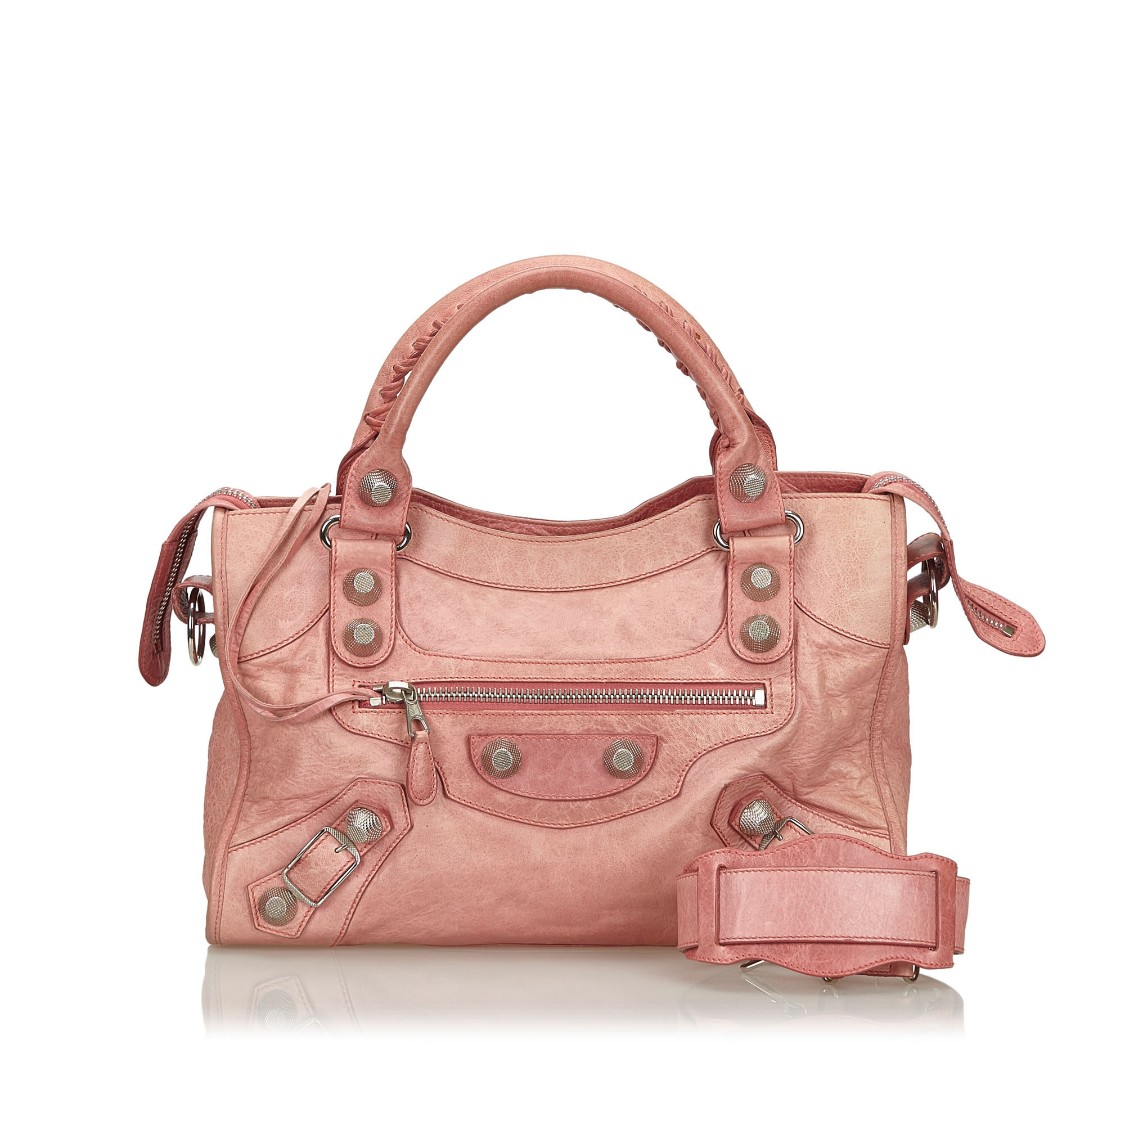 Balenciaga Leather Motocross Giant City Satchel In Pink